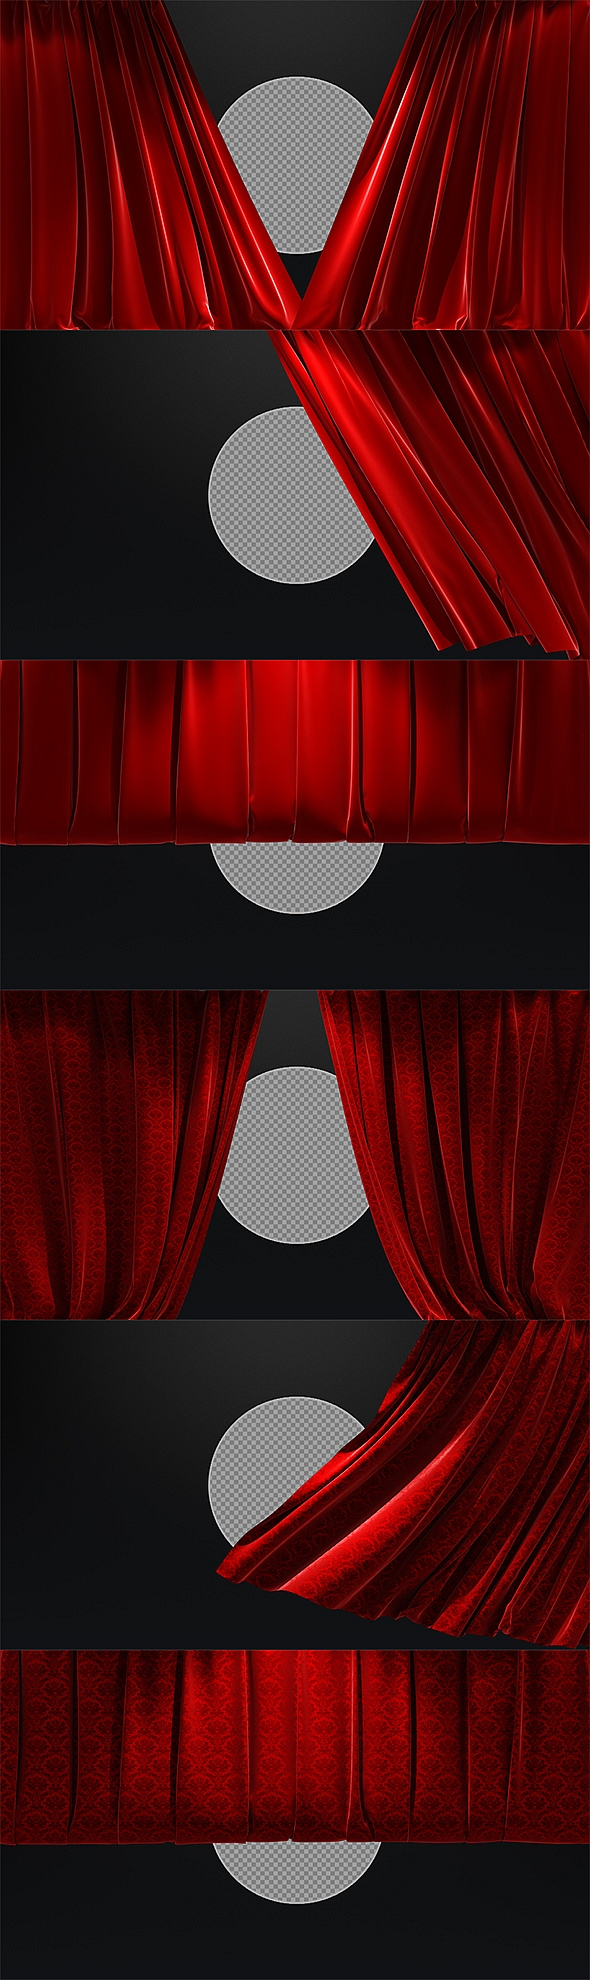 3D Realistic Red Curtains Opening & Closing - 10 Pack by SergeyPopov